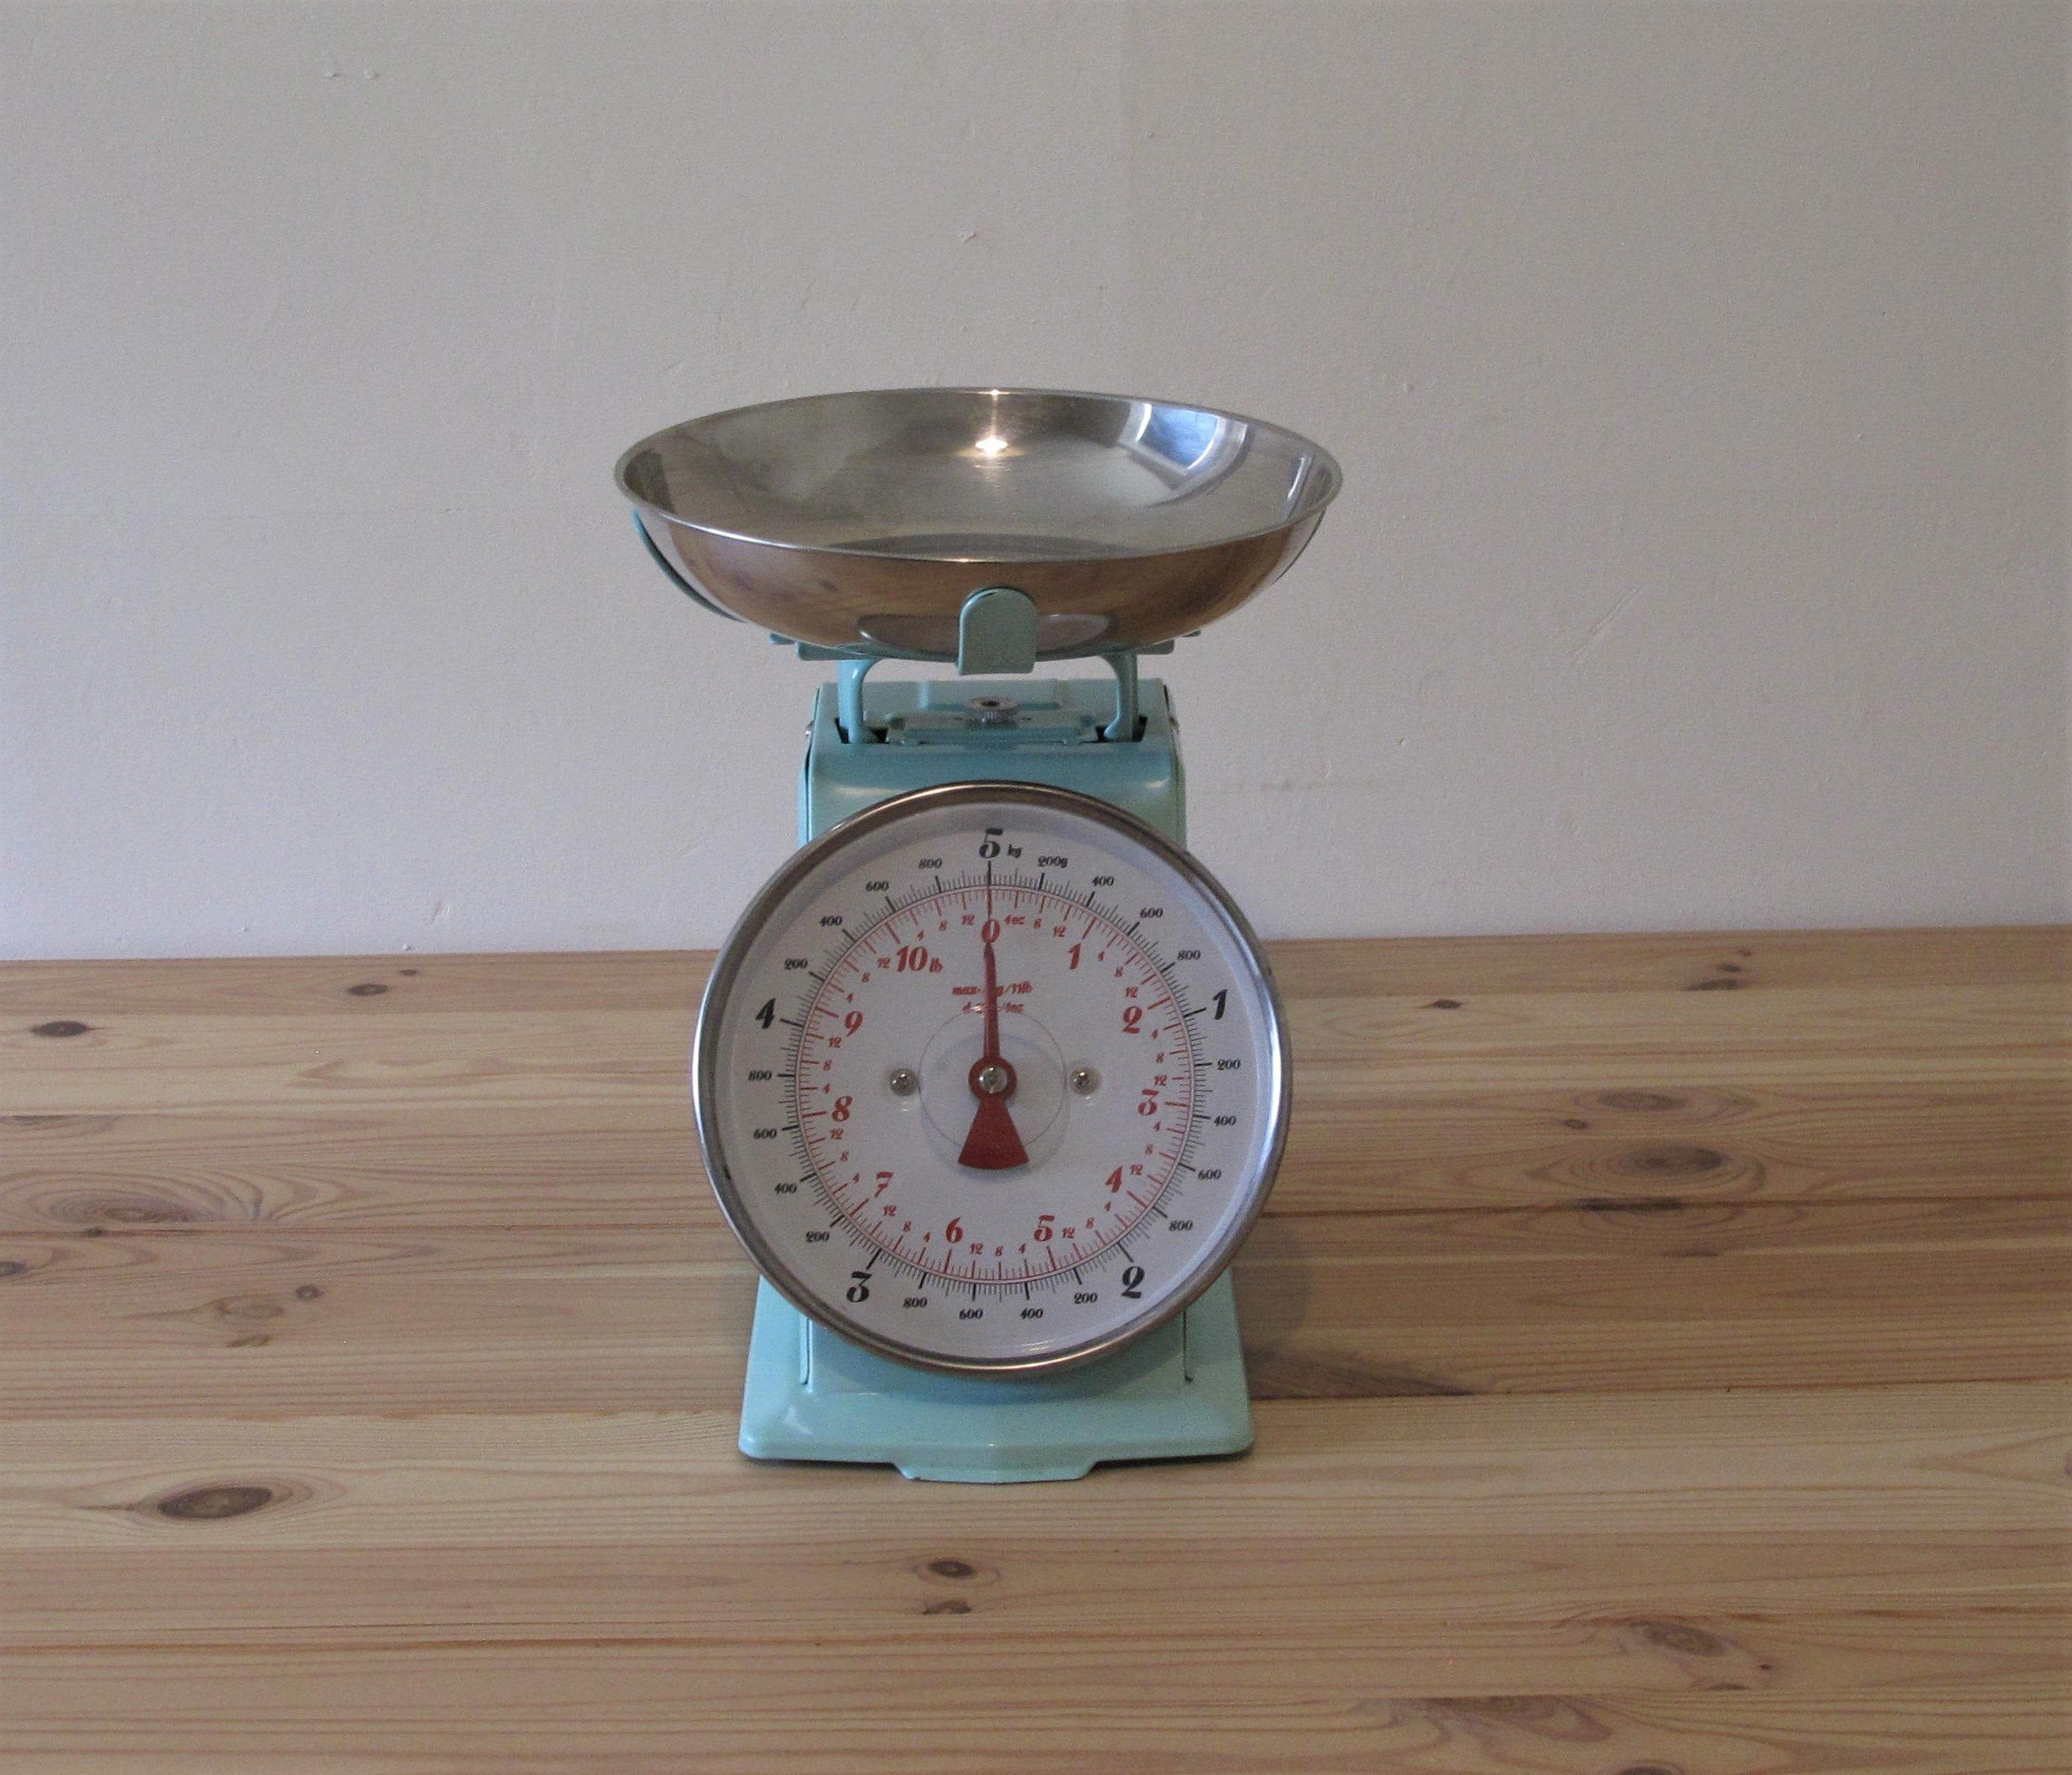 Vintage Kitchen Scales Old Weighing Scales Retro Boho  Etsy